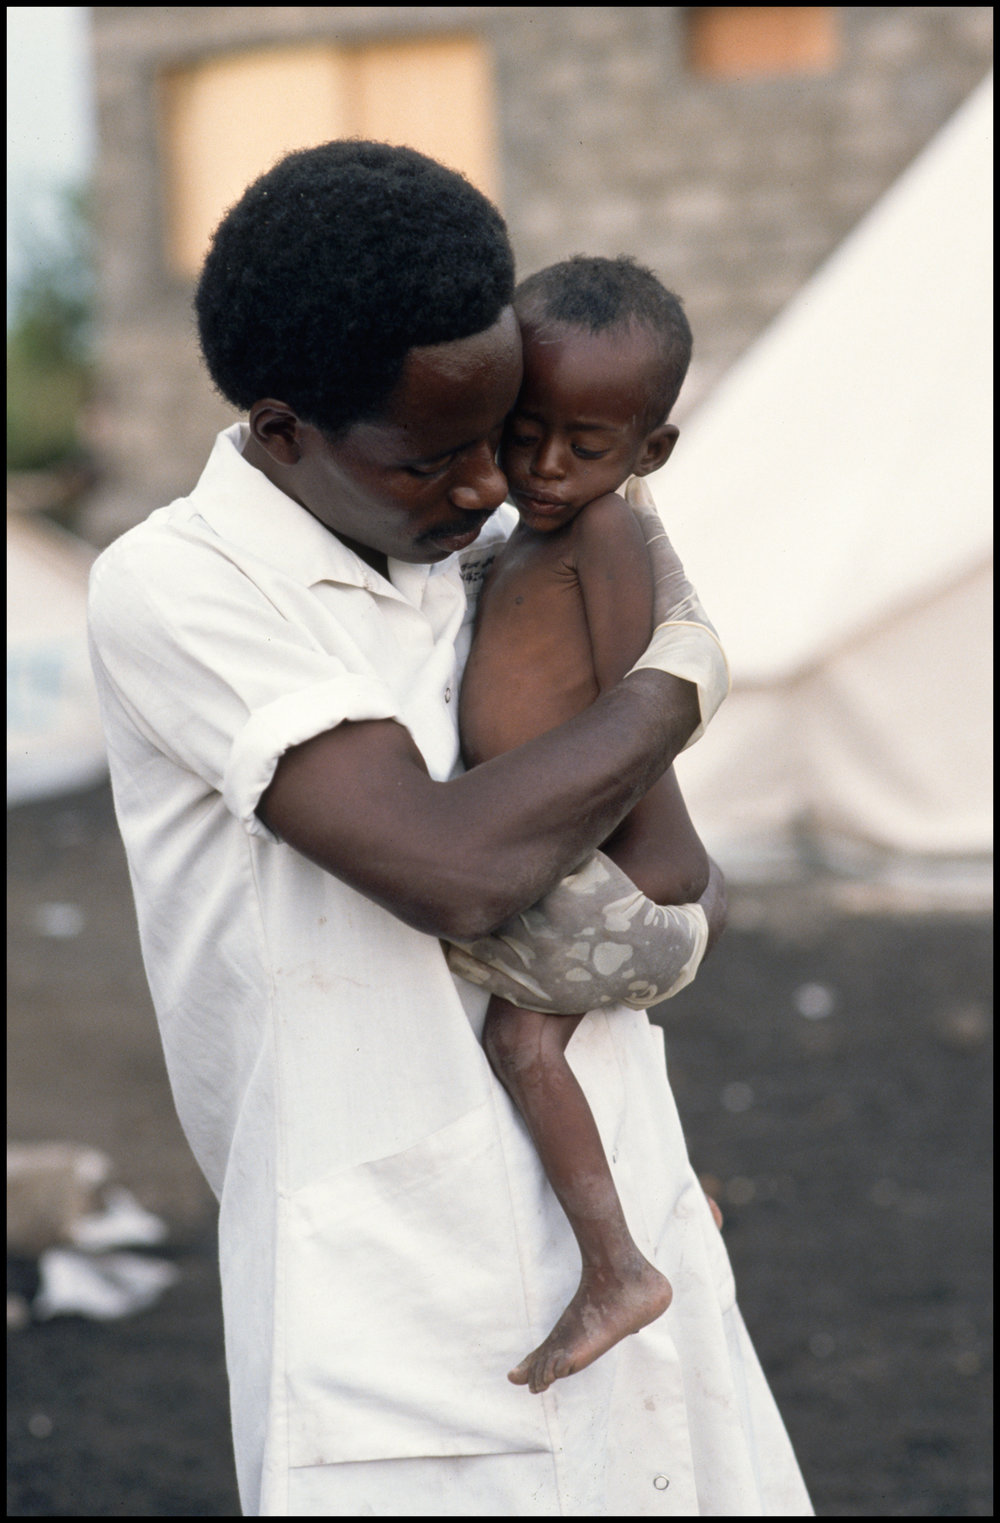 1994, Goma, Democratic Republic of the Congo --- An aid worker in a refugee camp lovingly holds a young Rwandan Hutu refugee.